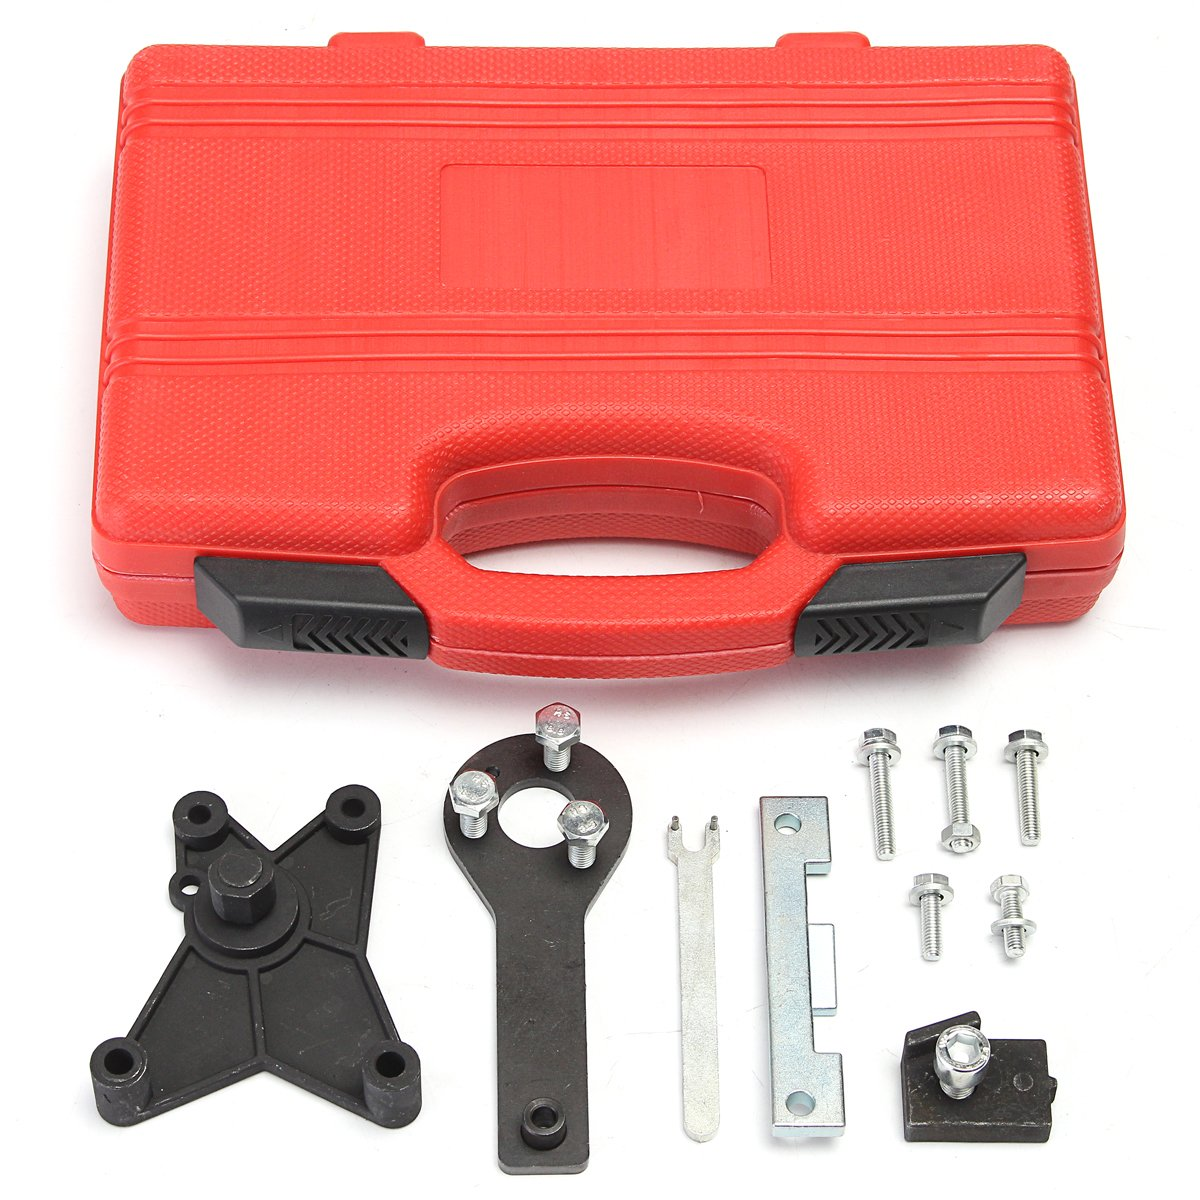 HITSAN Car Reparing Tool Kit Timing Tool Set Kit For Fiat For Ford For Lancia One Piece